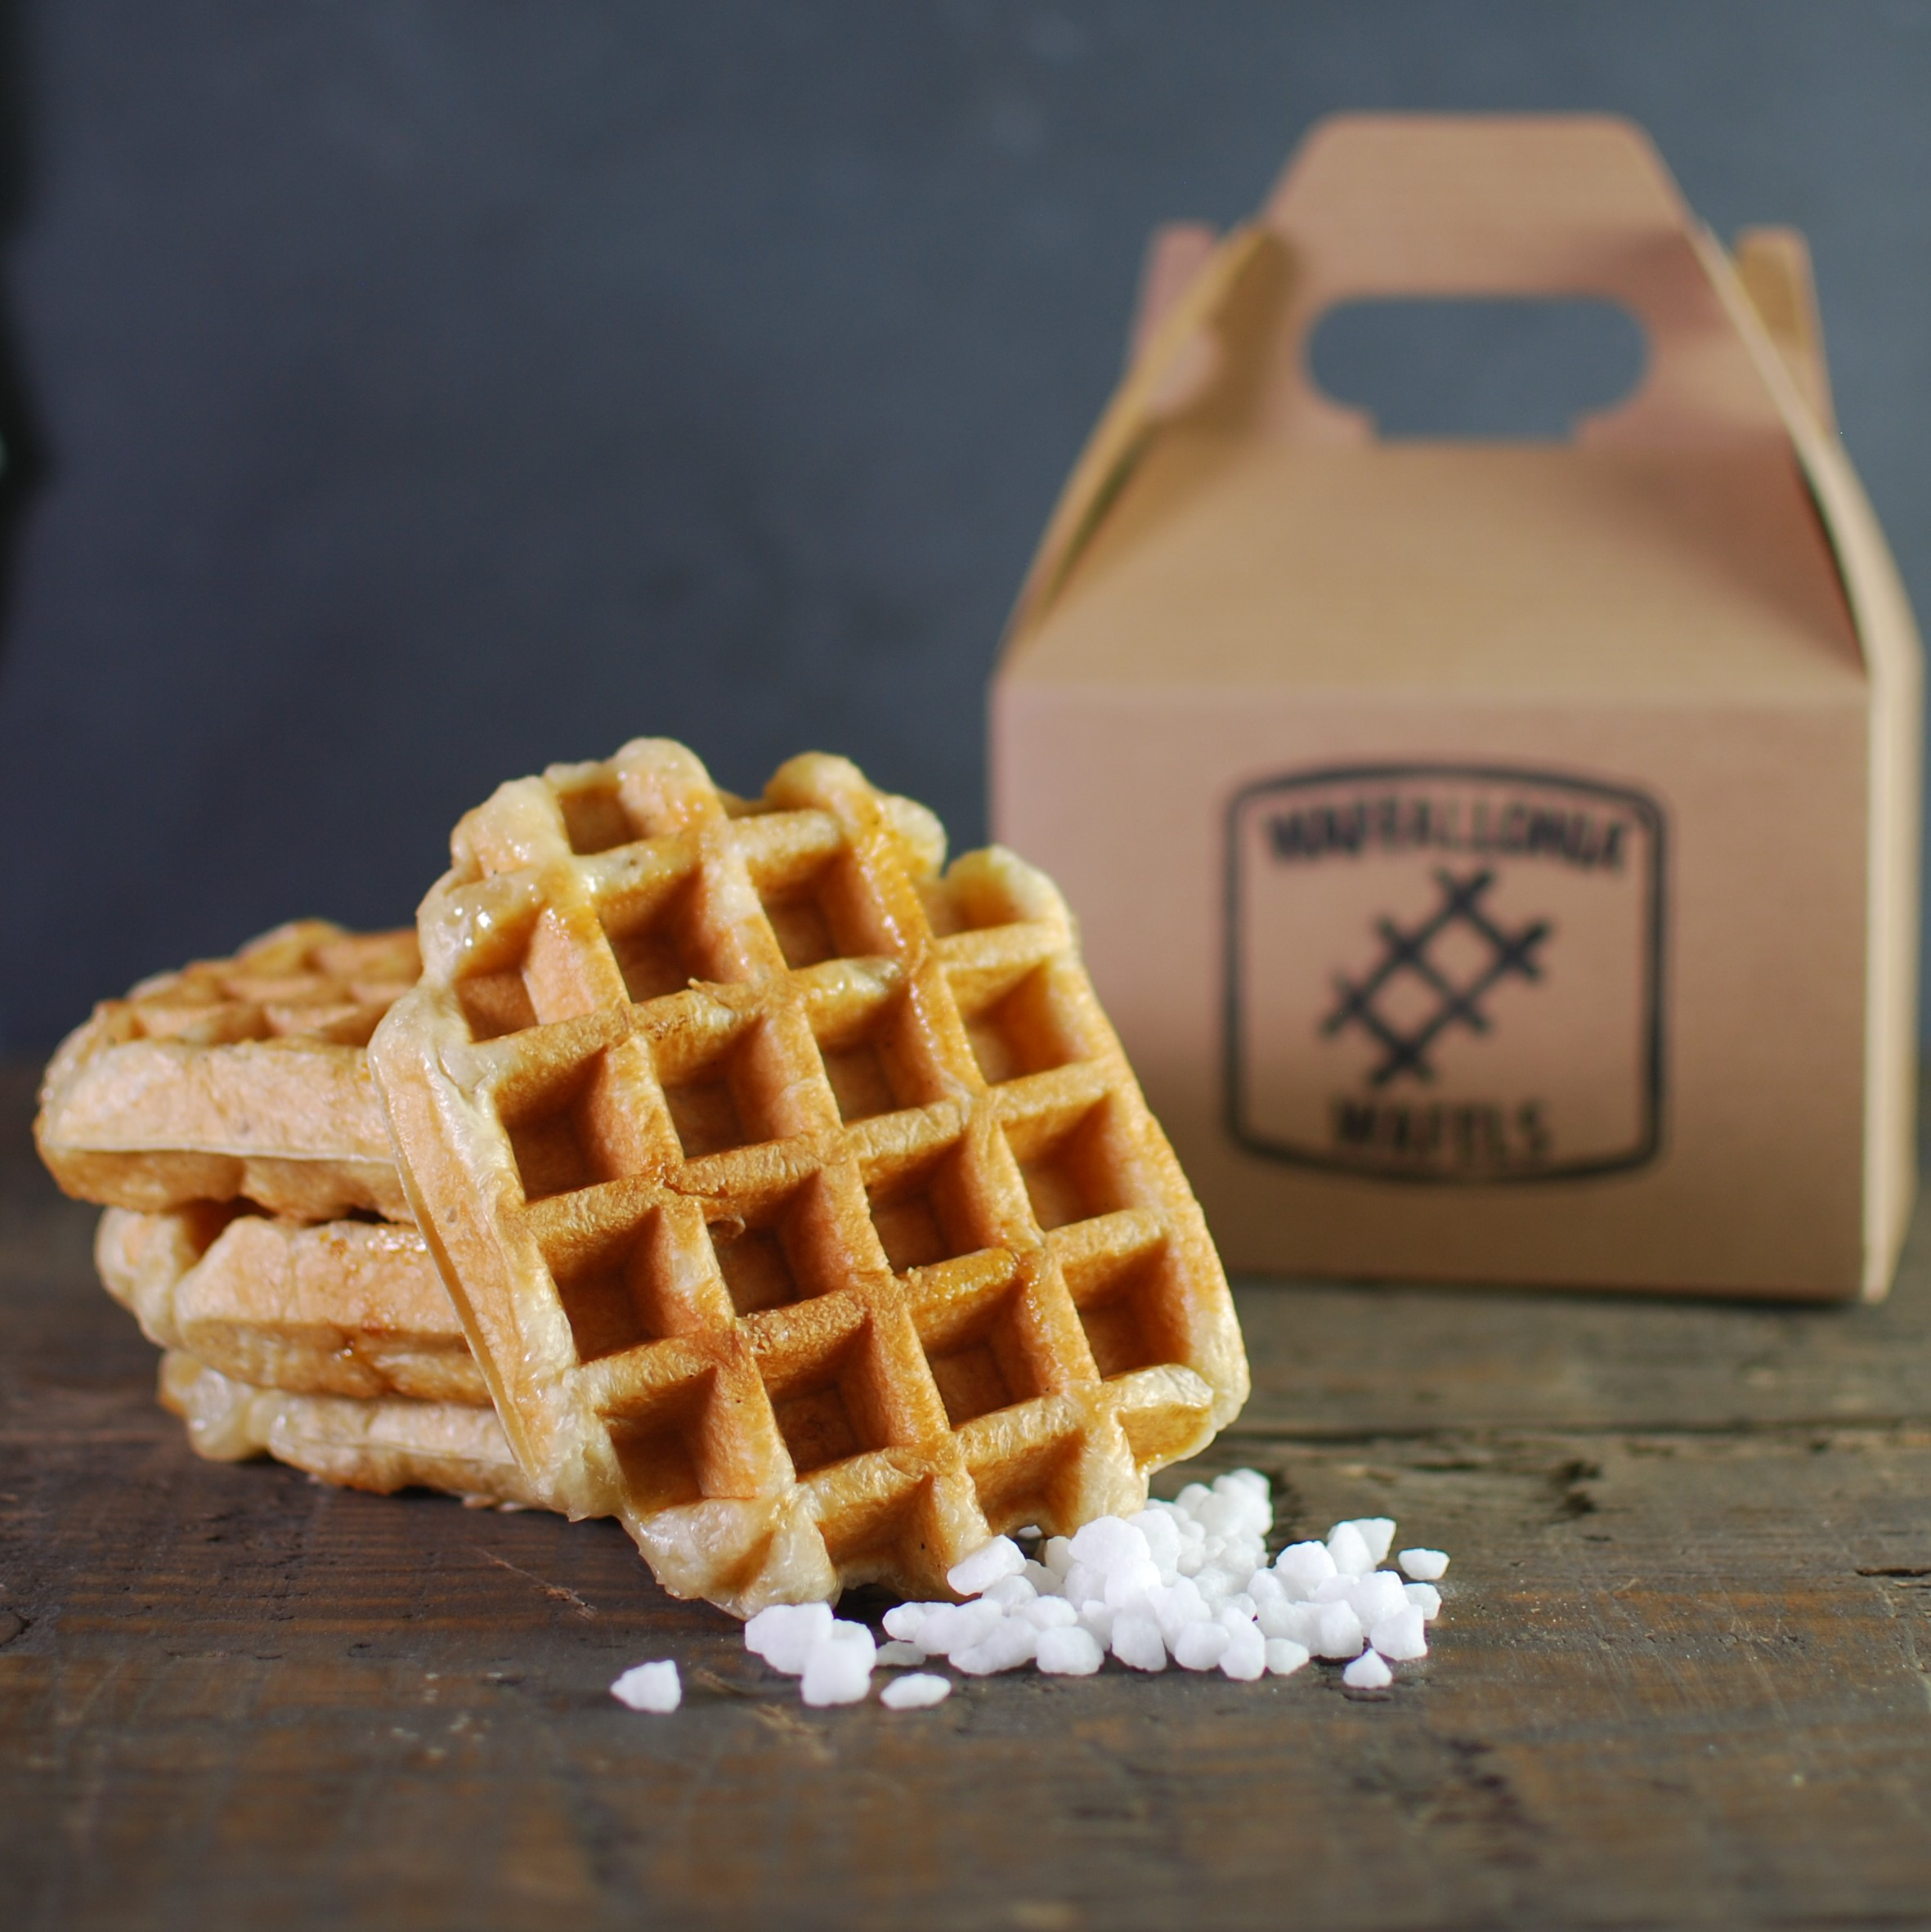 4 Waffle Pack - $14 (incl. tax)